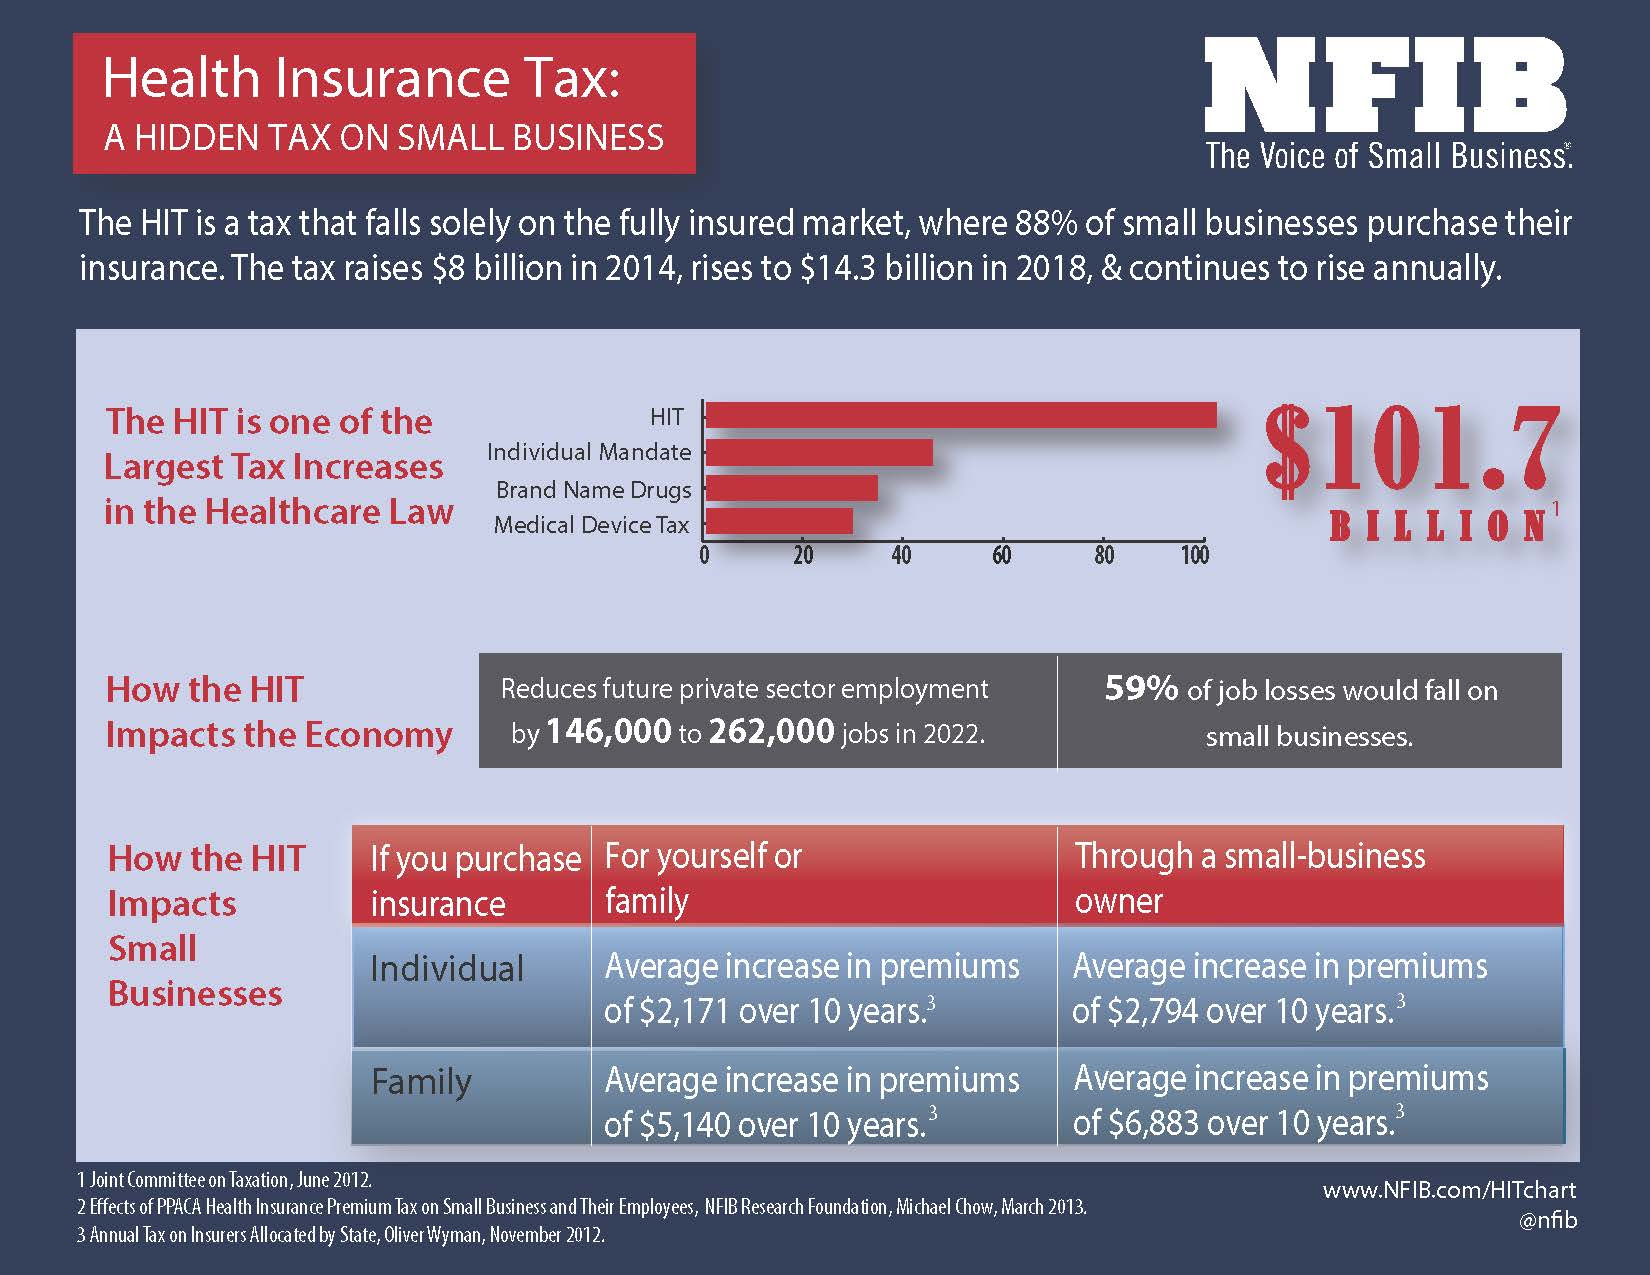 The Small Business Health Insurance Tax | NFIB